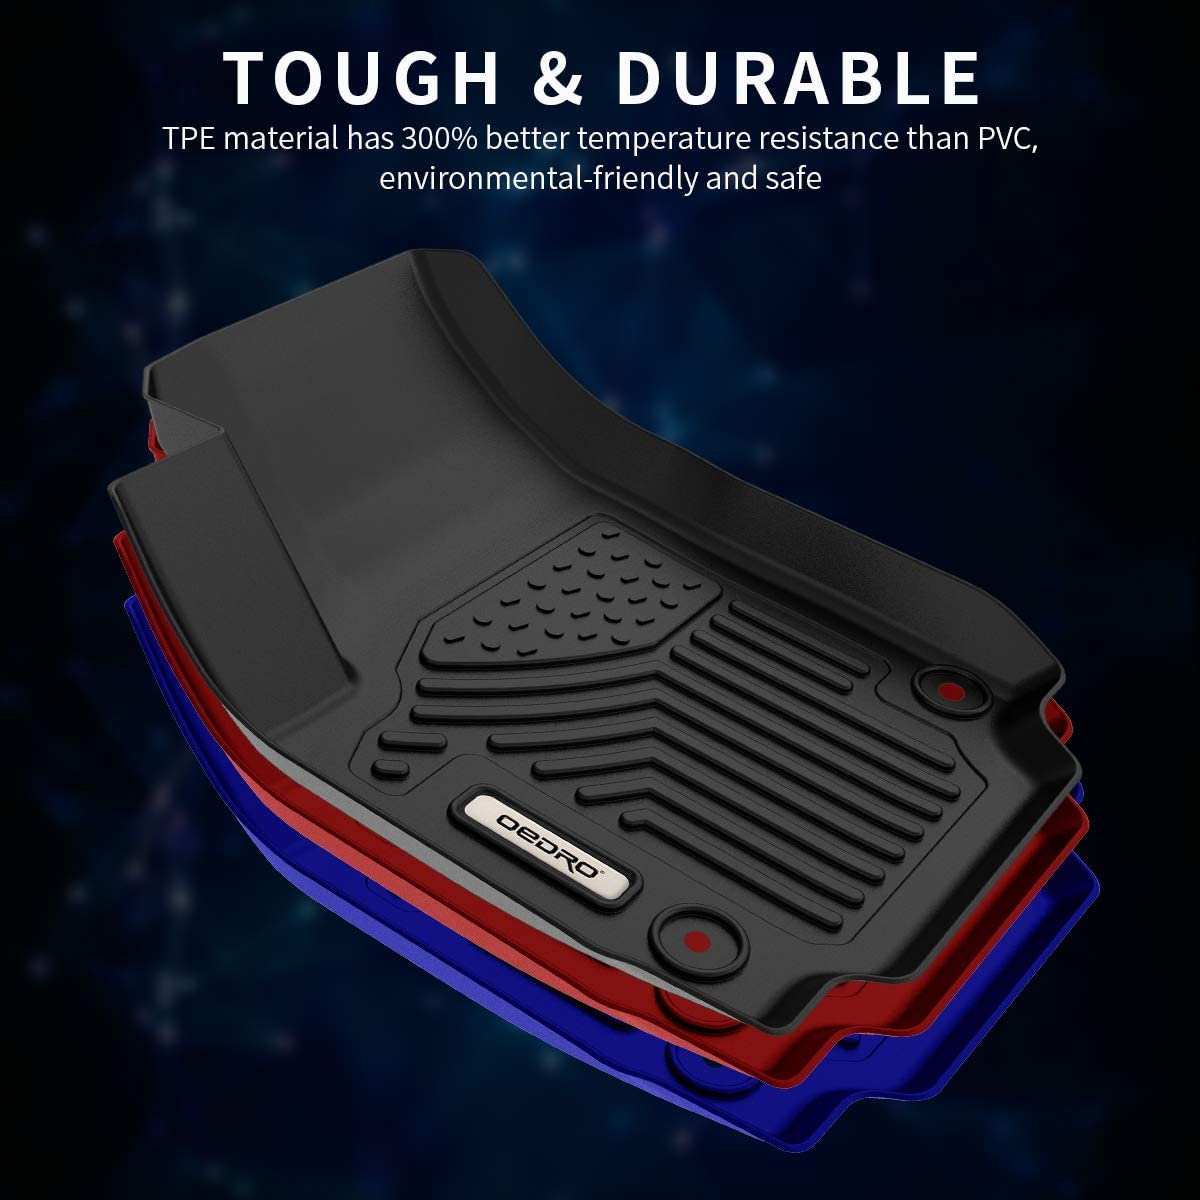 oEdRo Floor Mats Compatible for 2018-2020 GMC Terrain Unique Black TPE All-Weather Guard Includes 1st and 2nd Row Full Set Liners